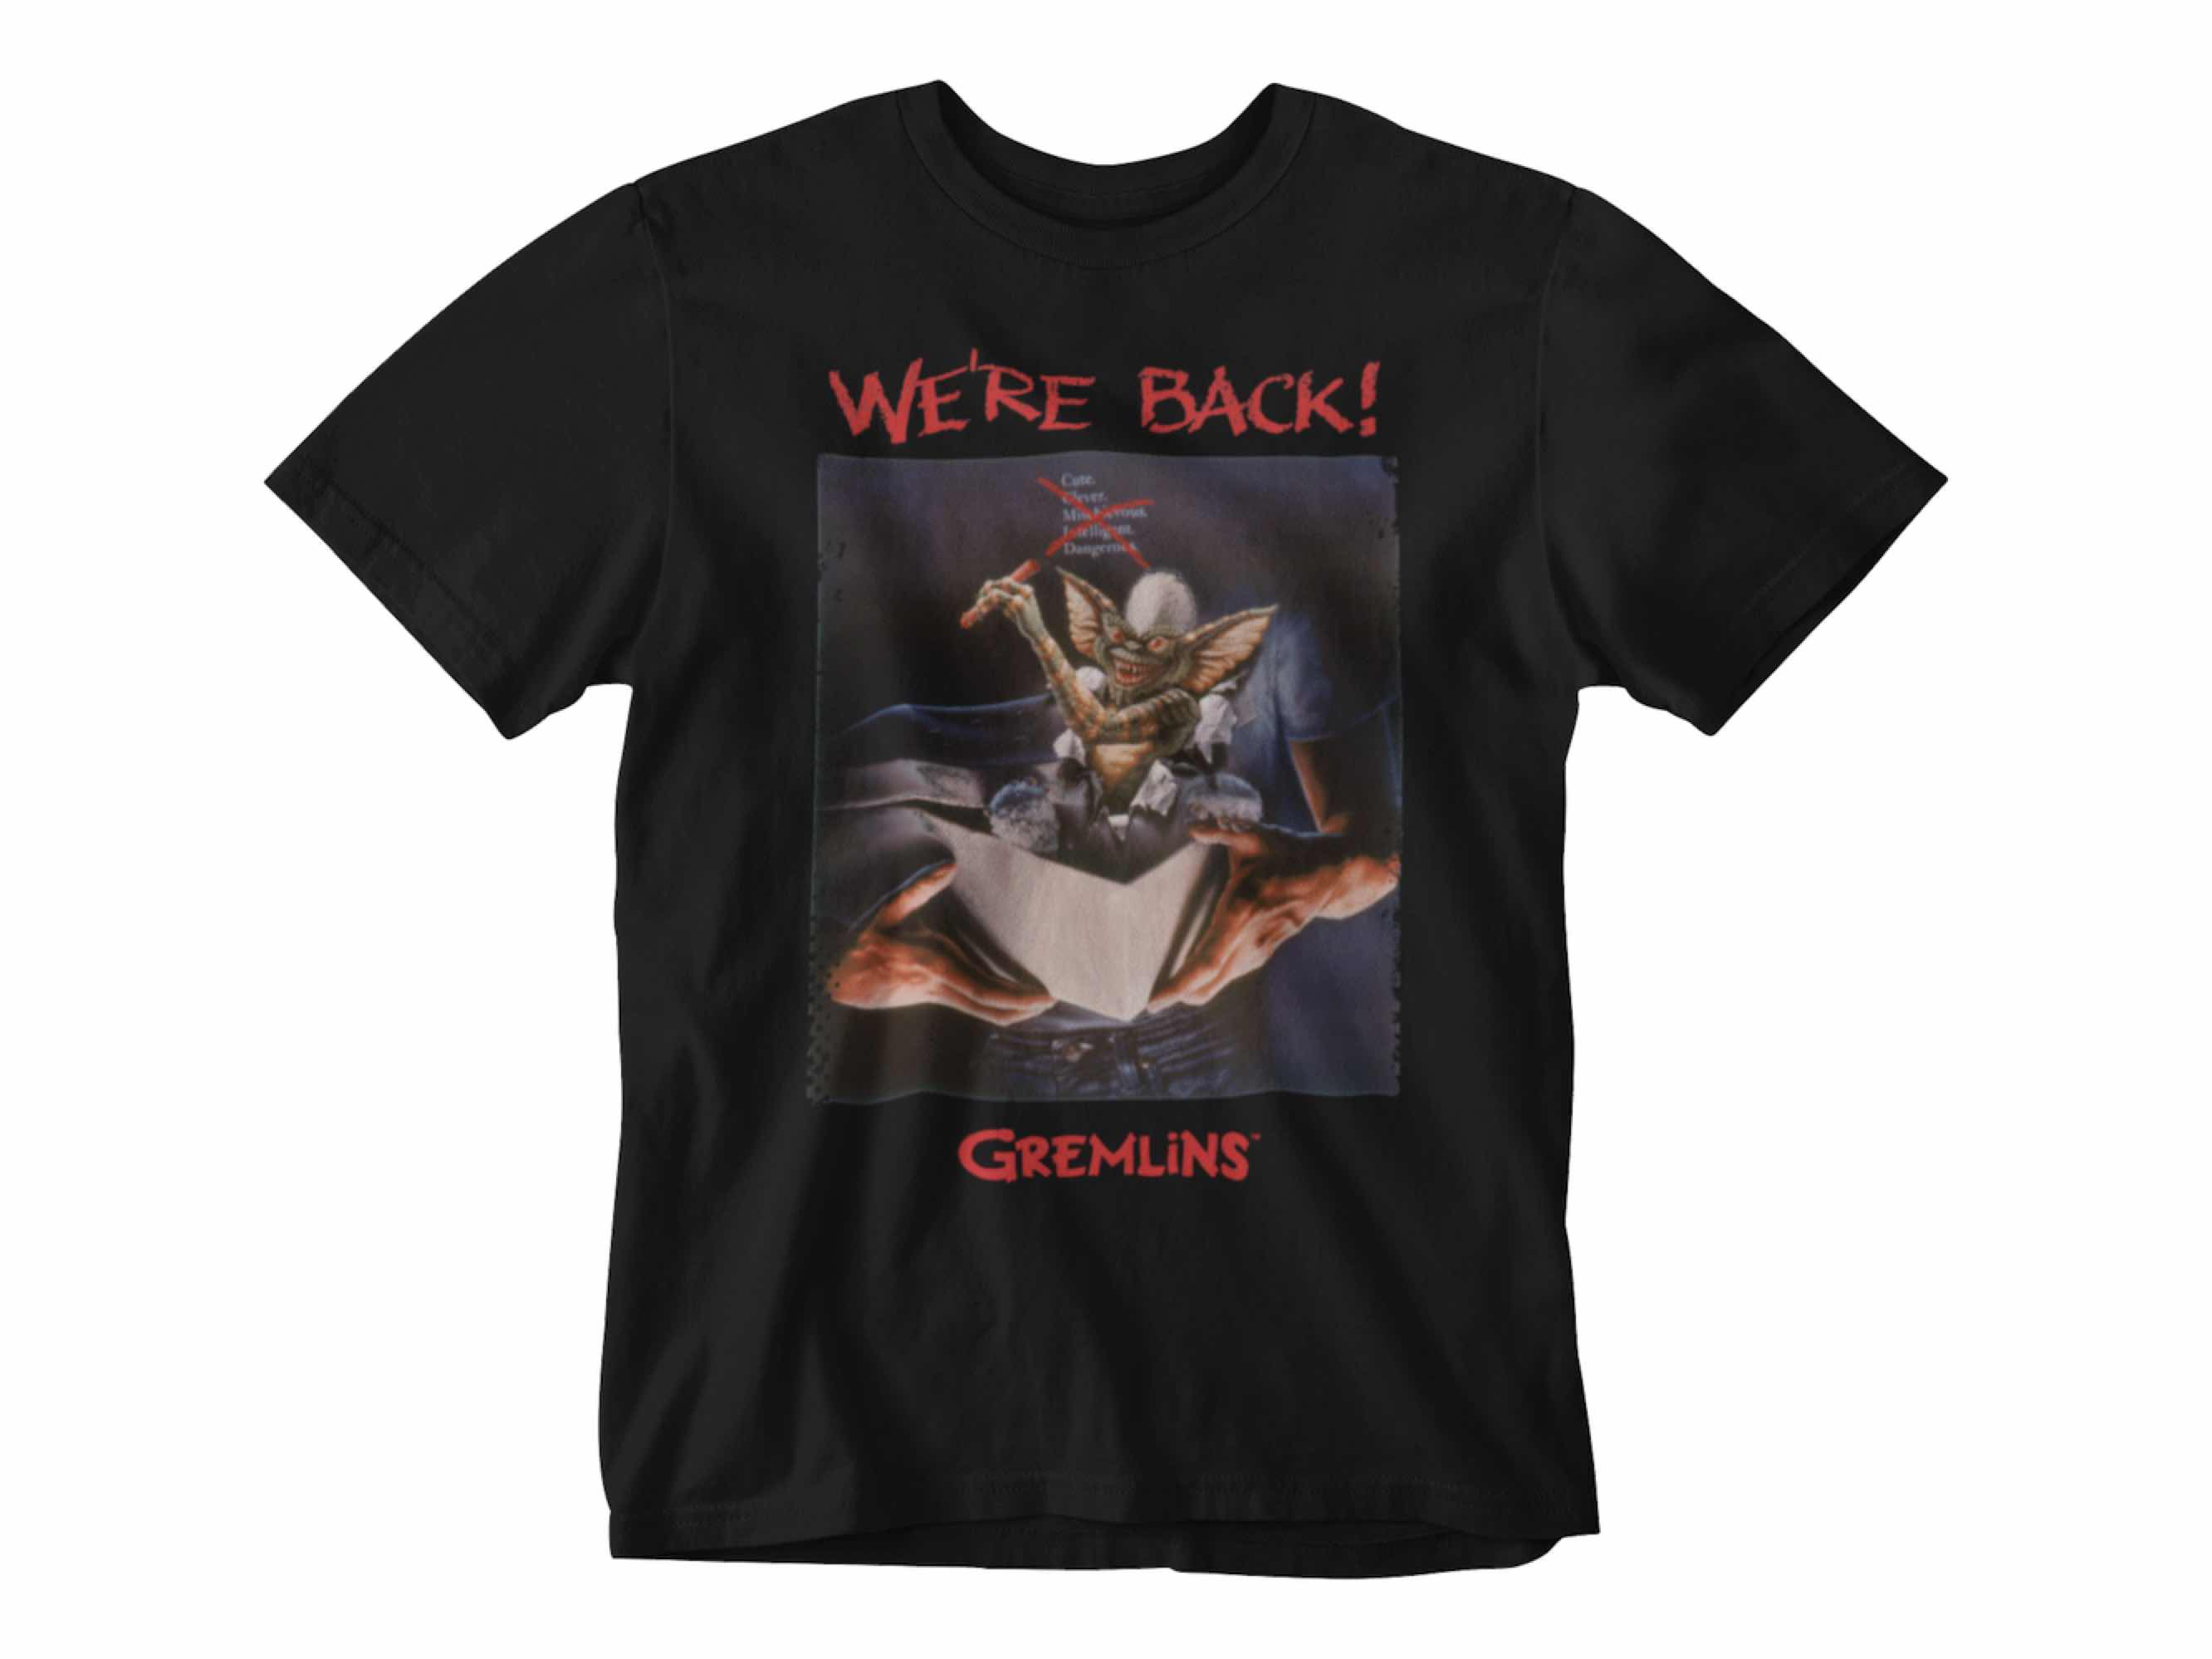 CAMISETA WE'RE BACK! UNISEX TALLA L GREMLINS